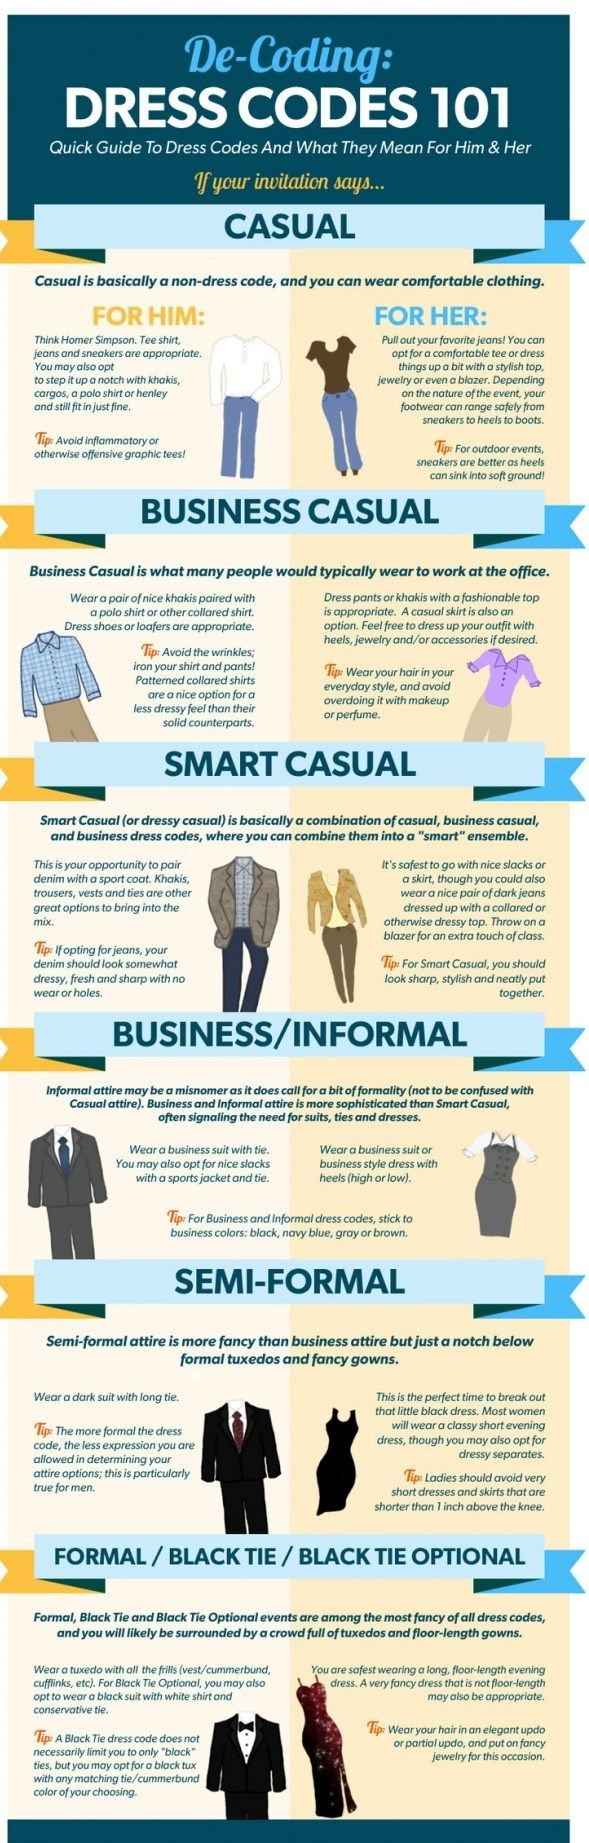 Even this formal list of dress codes points out formal doesn't have to mean floor length.